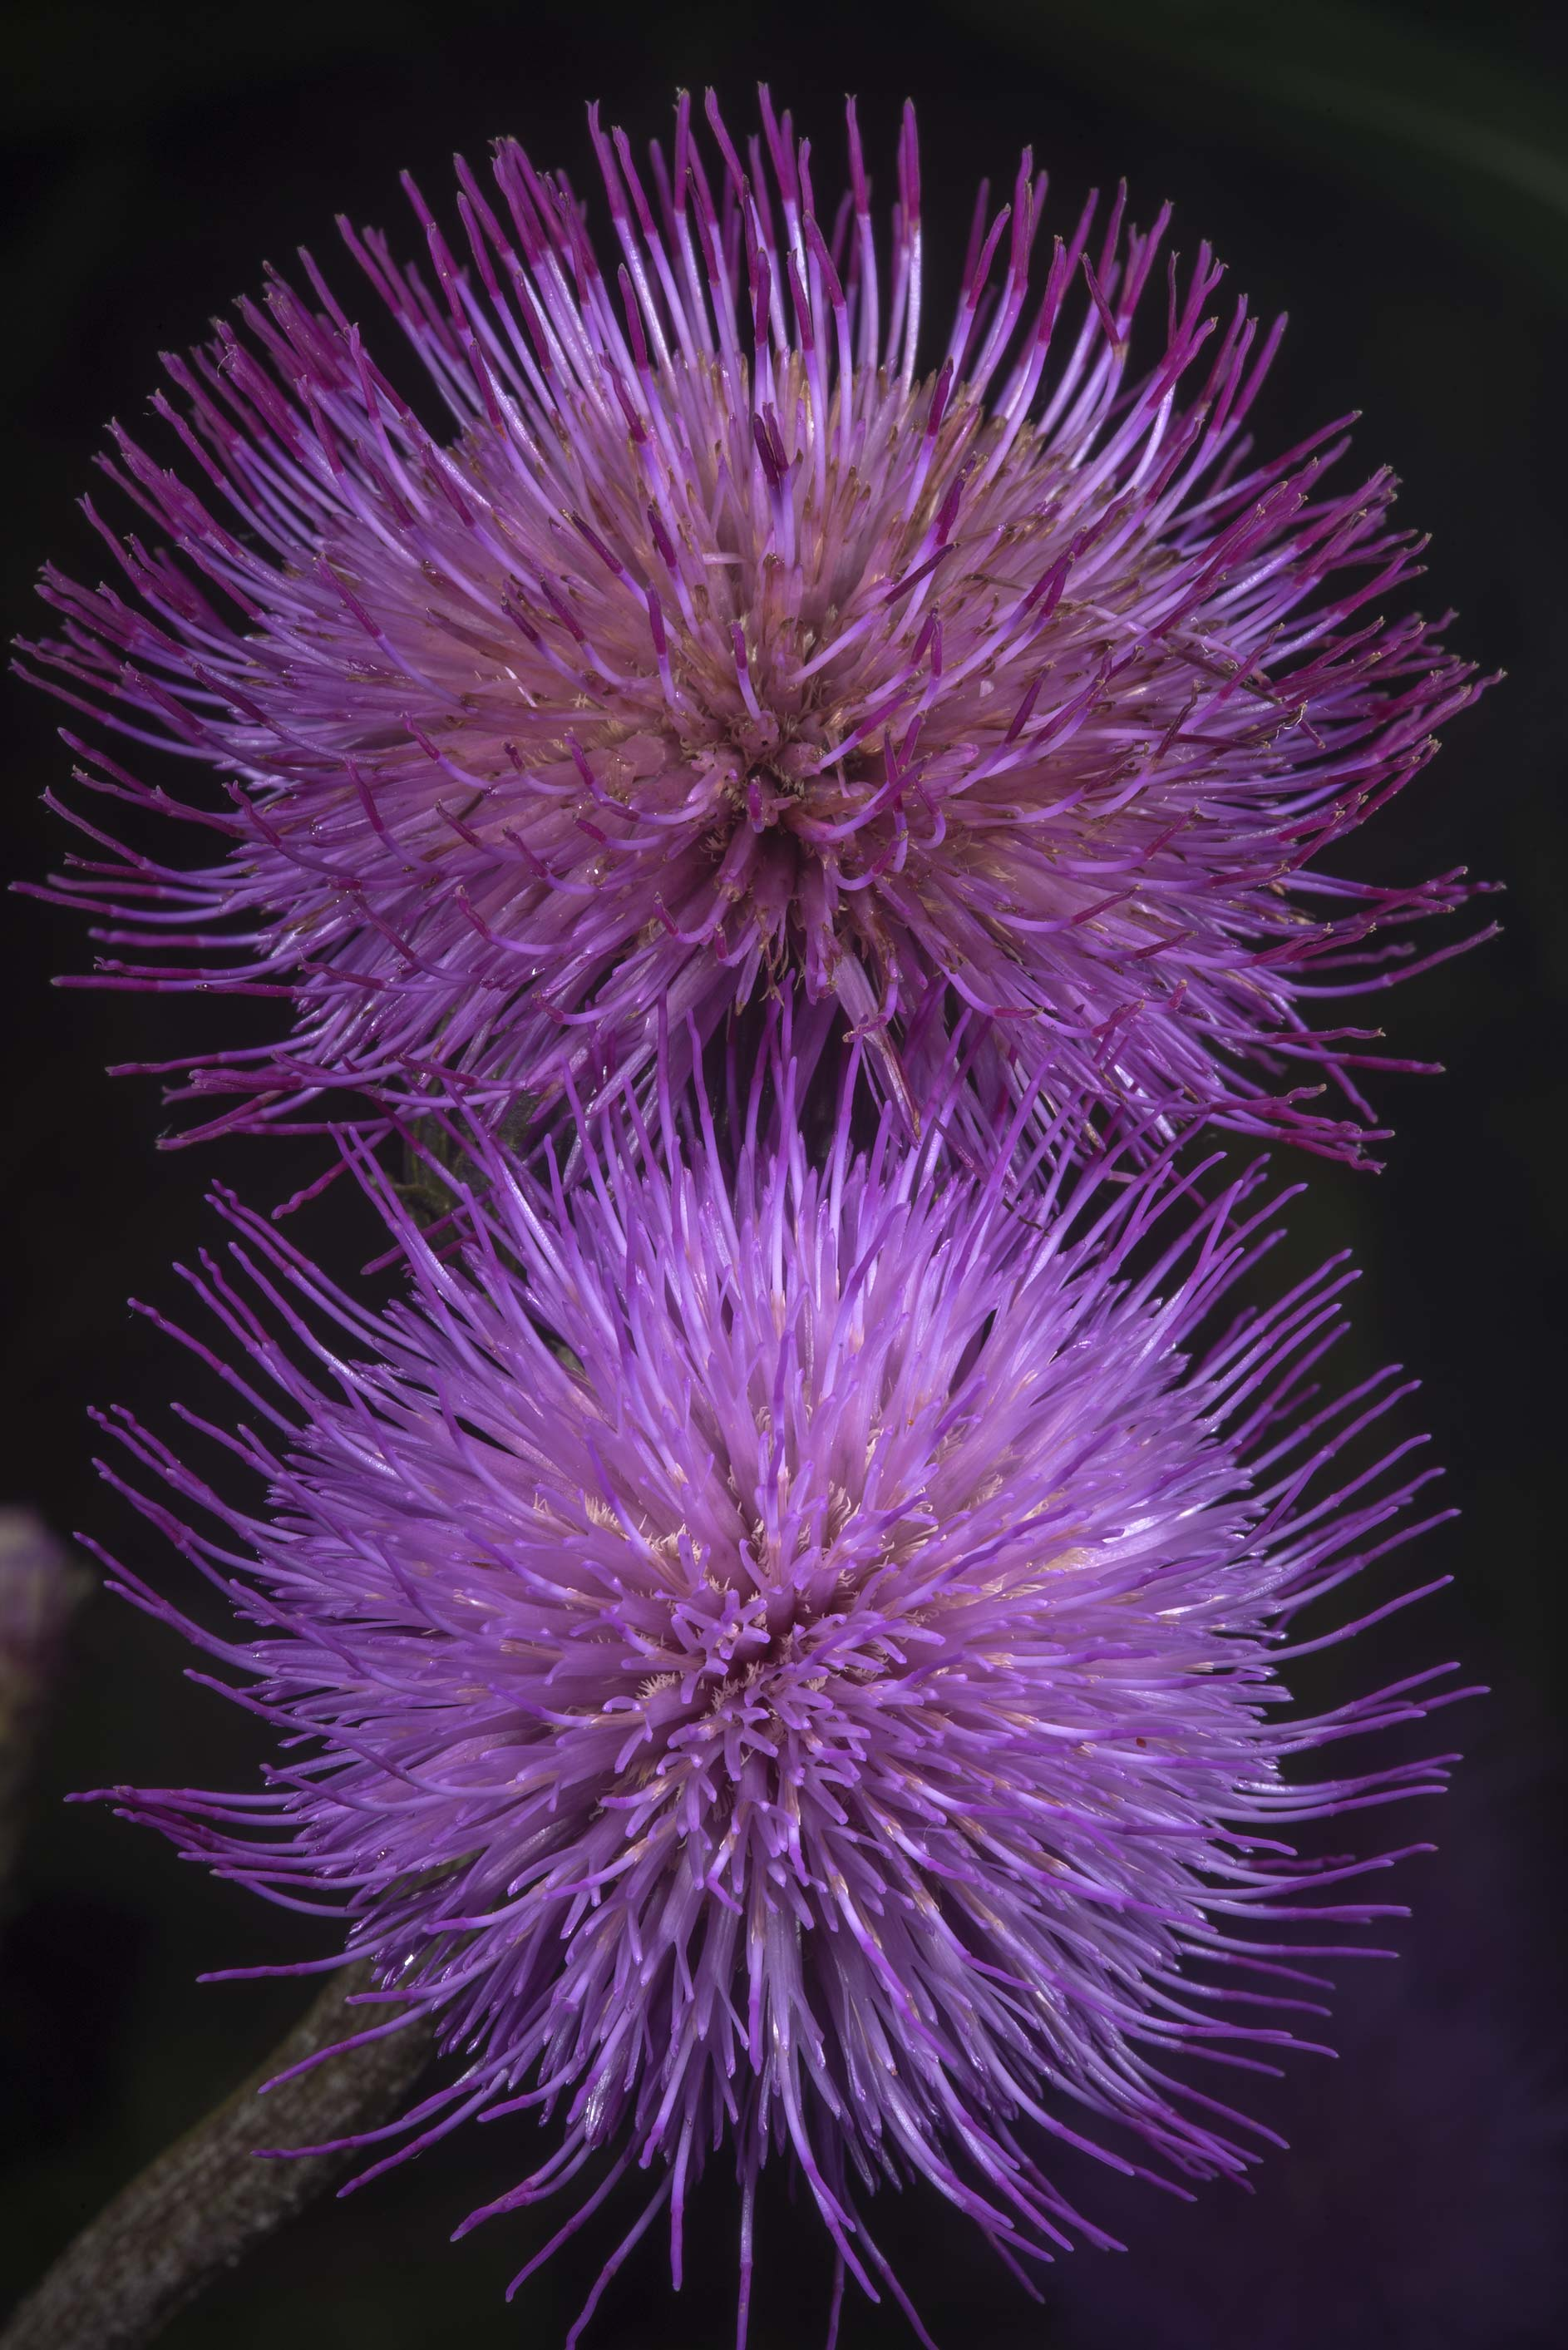 Flowers of field thistle (Cirsium) in Siverskaya...miles south from St.Petersburg. Russia